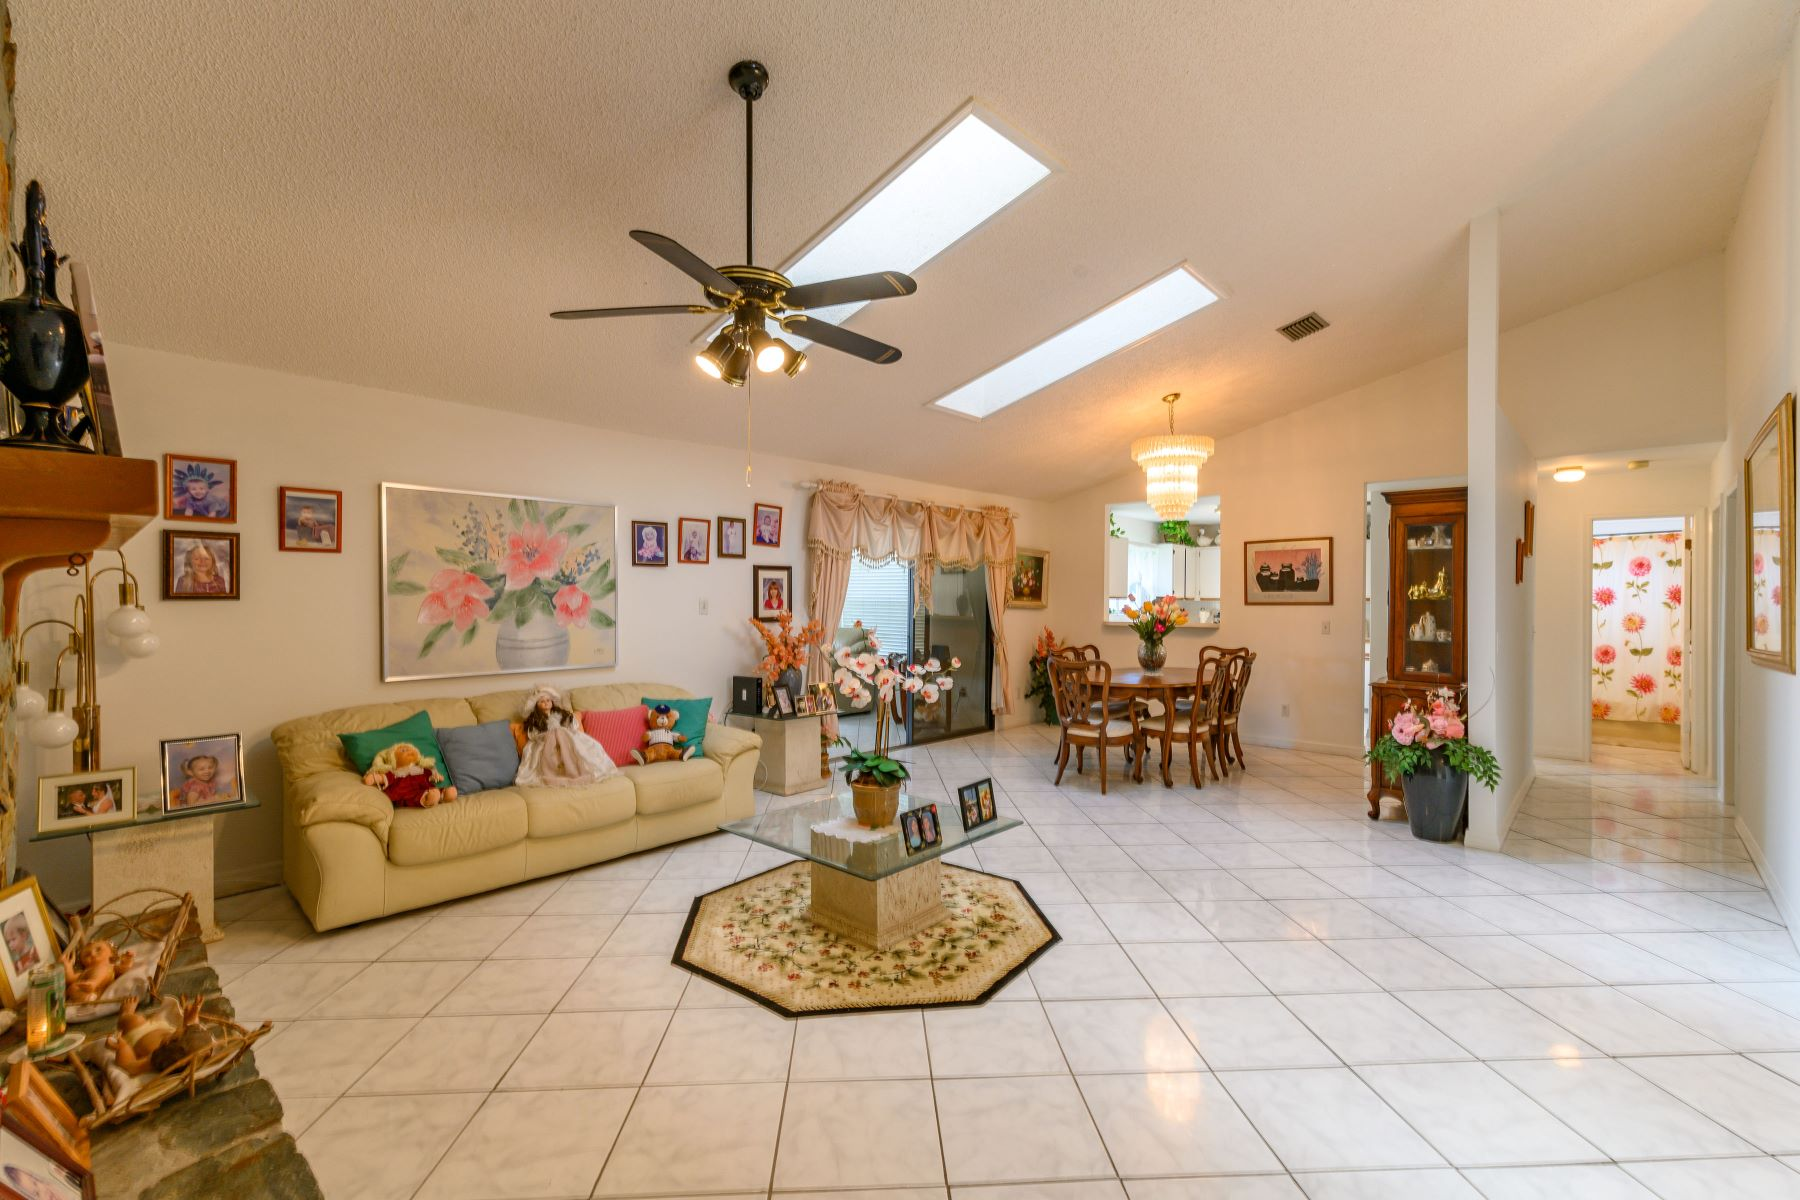 Additional photo for property listing at 1366 Lerici Nw Street Palm Bay, Florida 32907 United States